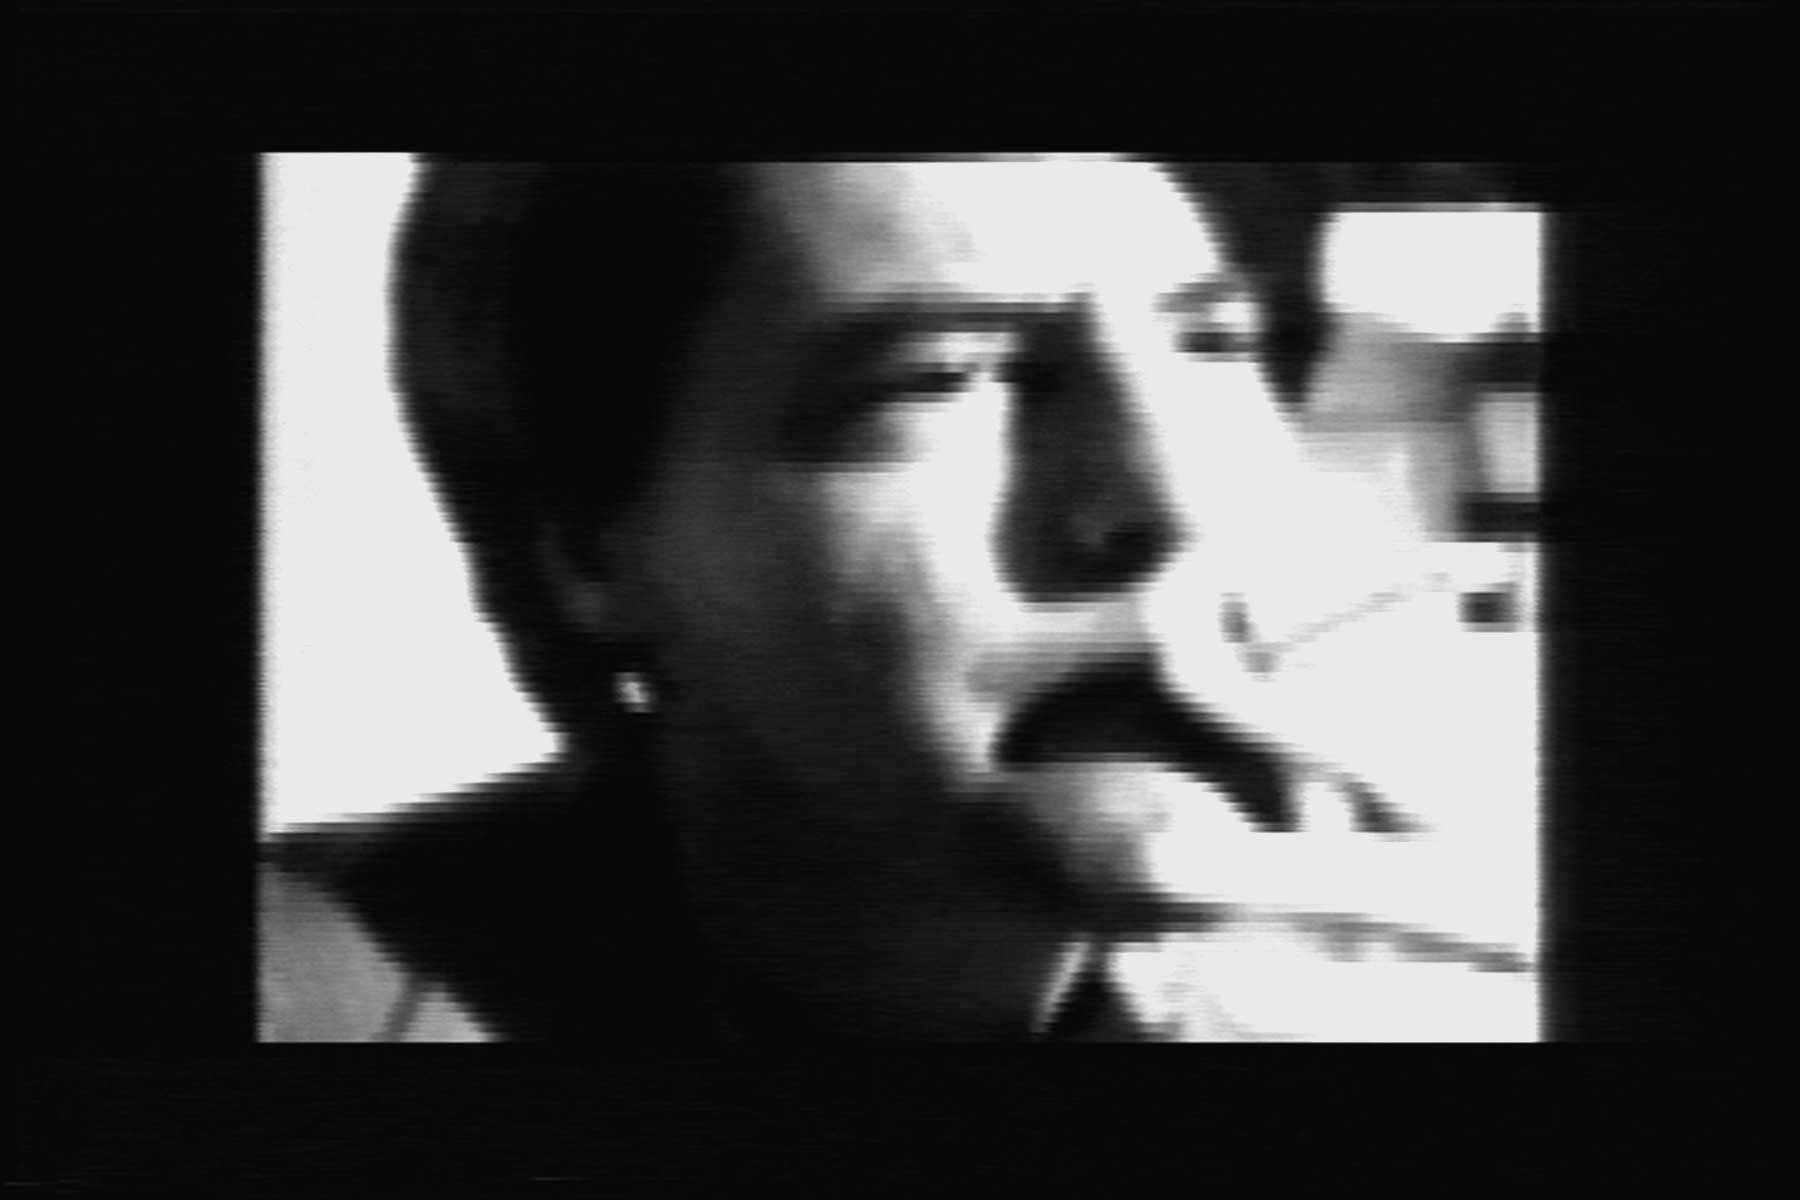 Video still from Joe-Joe (1993), co-produced with Leslie Singer, featuring writer Kevin Killian